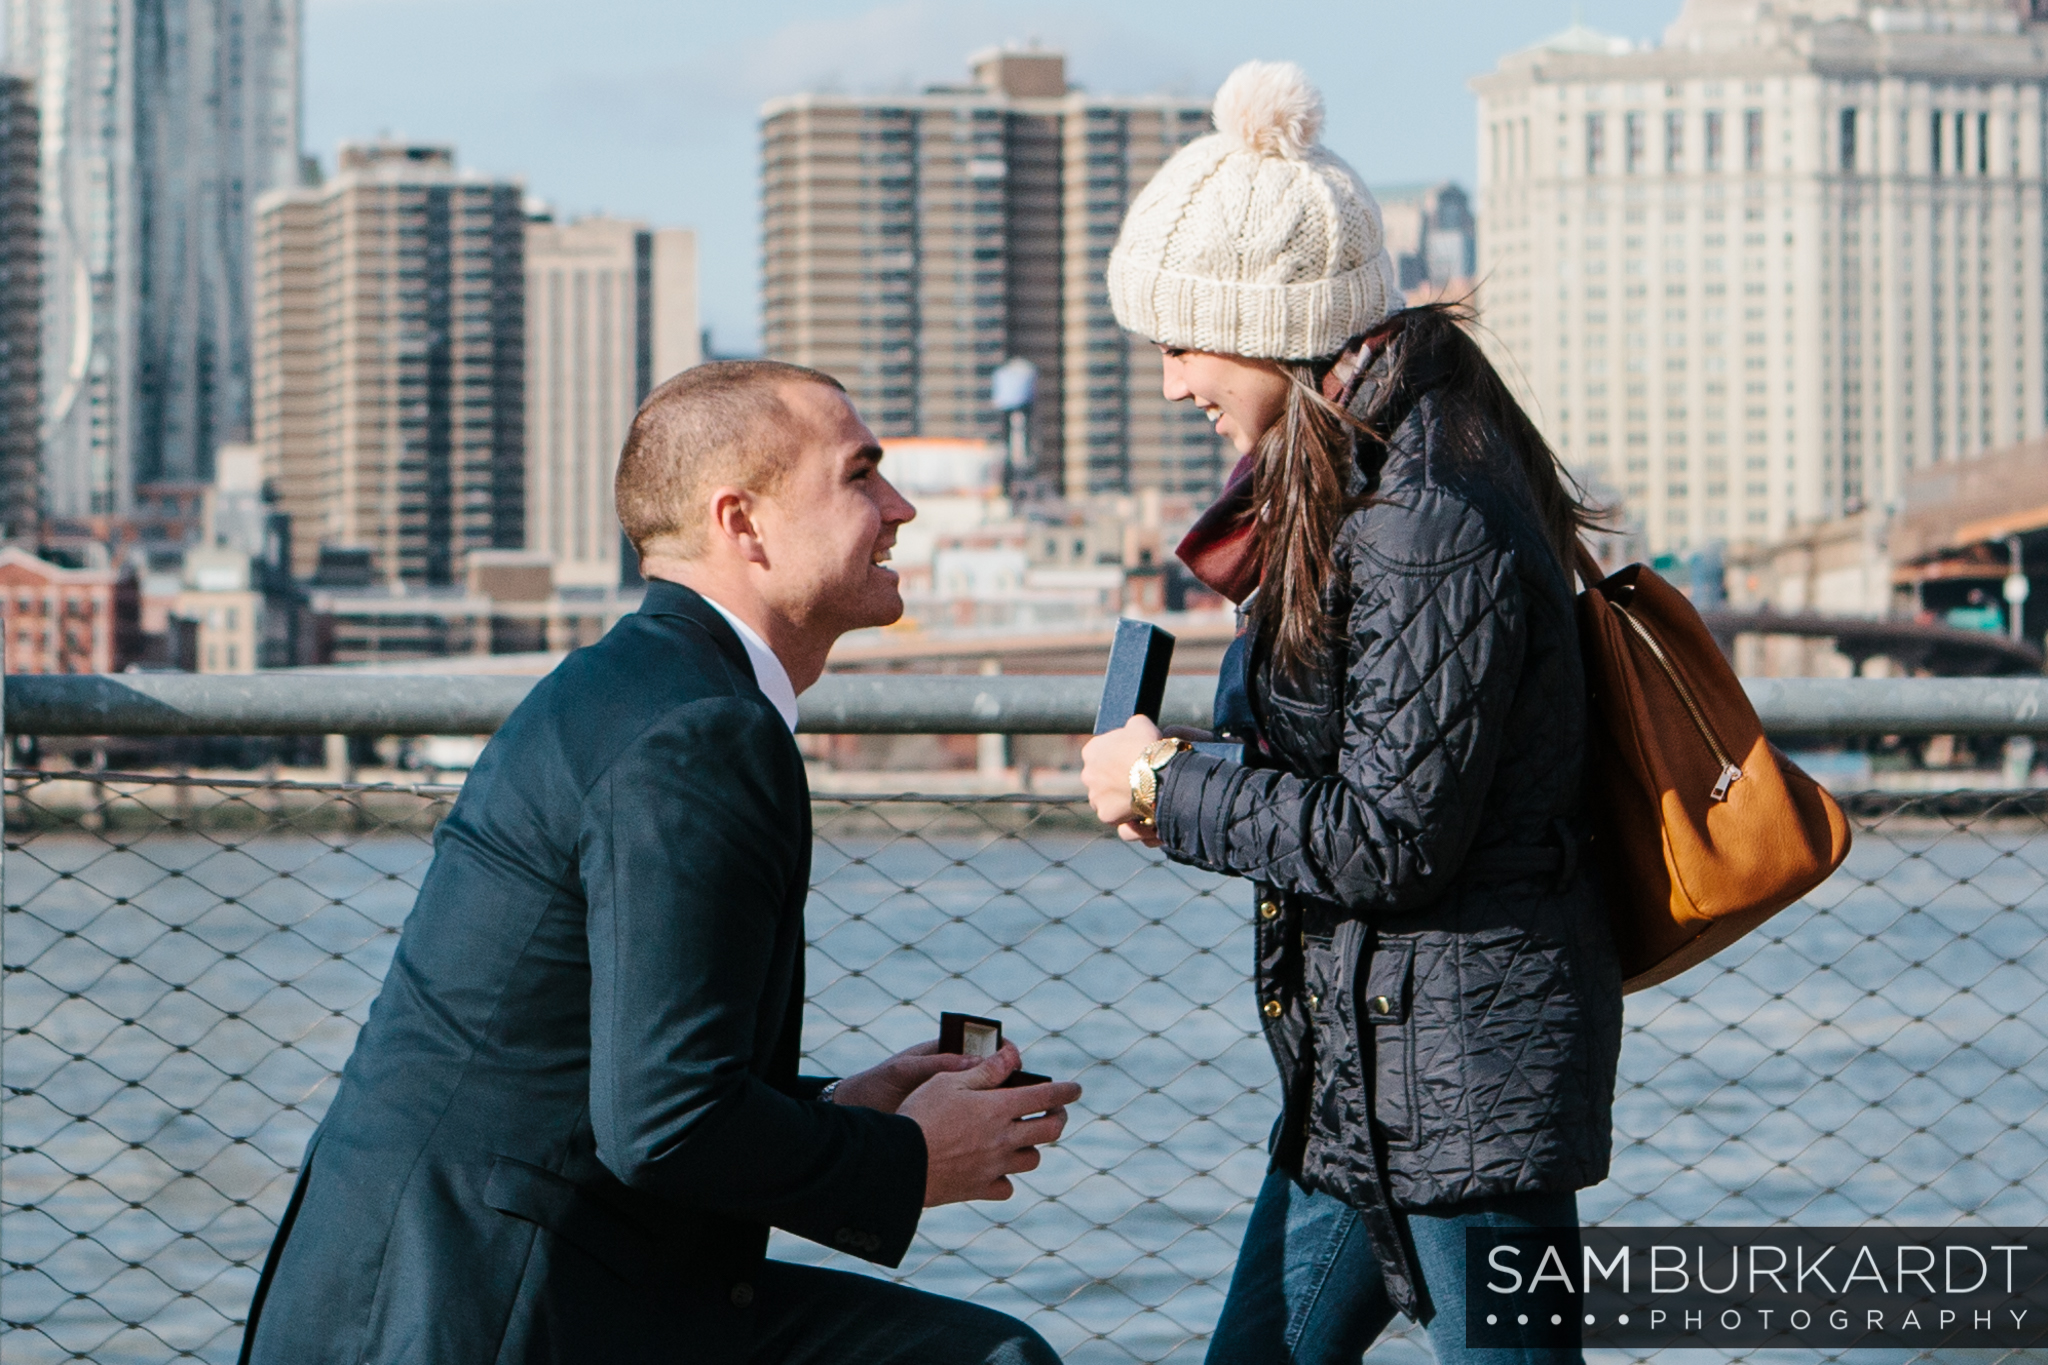 samburkardt_brooklyn_bridge_new_york_engagement_proposal_skyline_0005.jpg